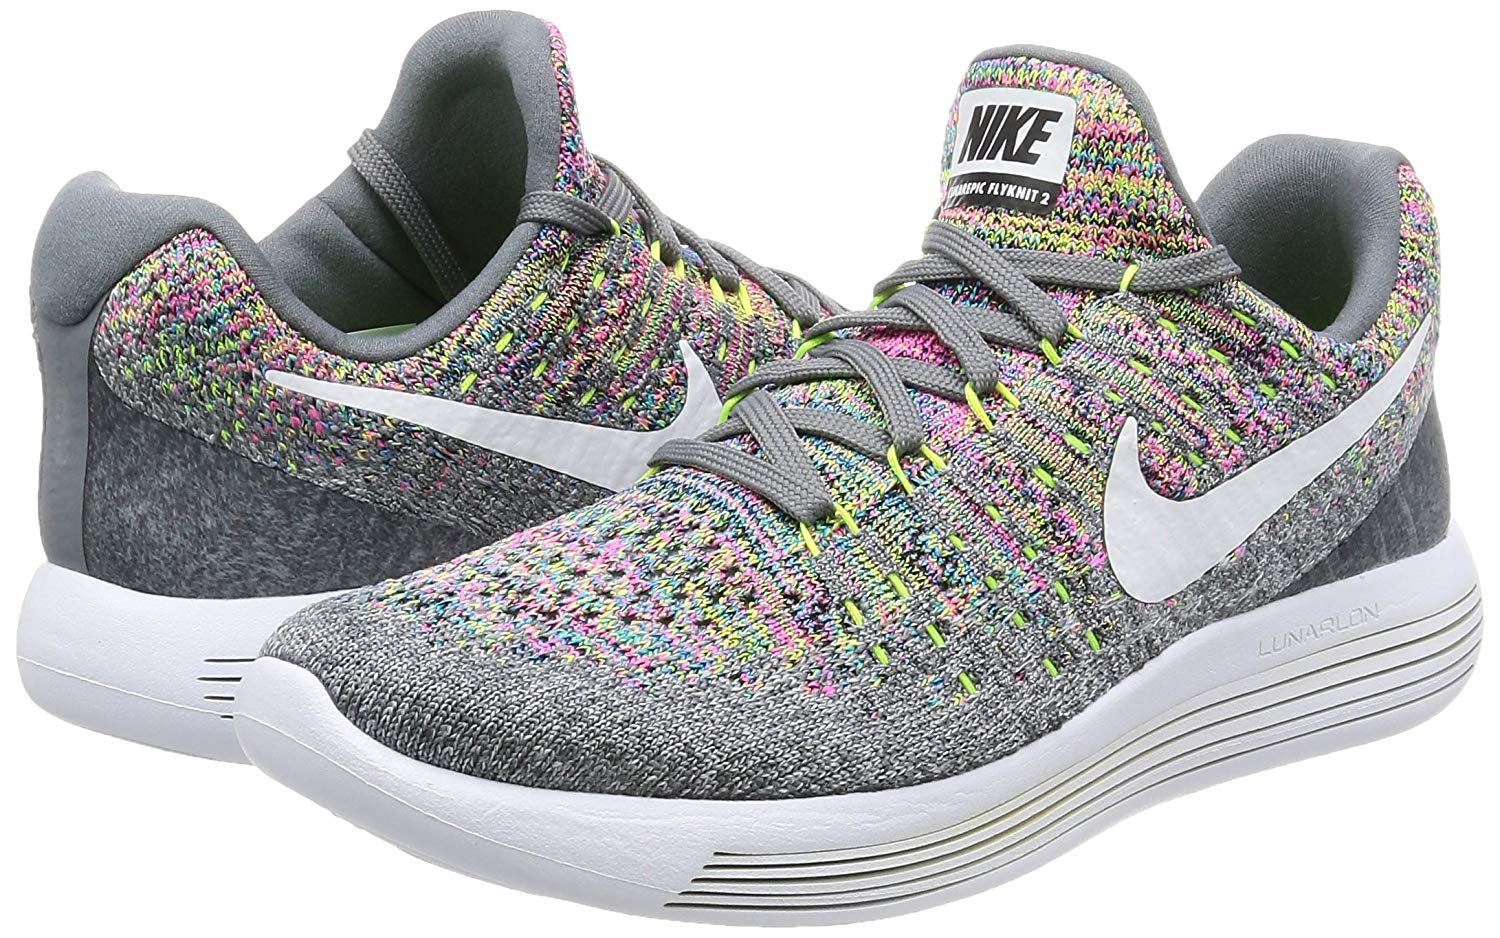 f078803f2d251 Details about Nike Womens Lunarepic Low Flyknit 2 Fabric Low Top Lace Up  Running Sneaker